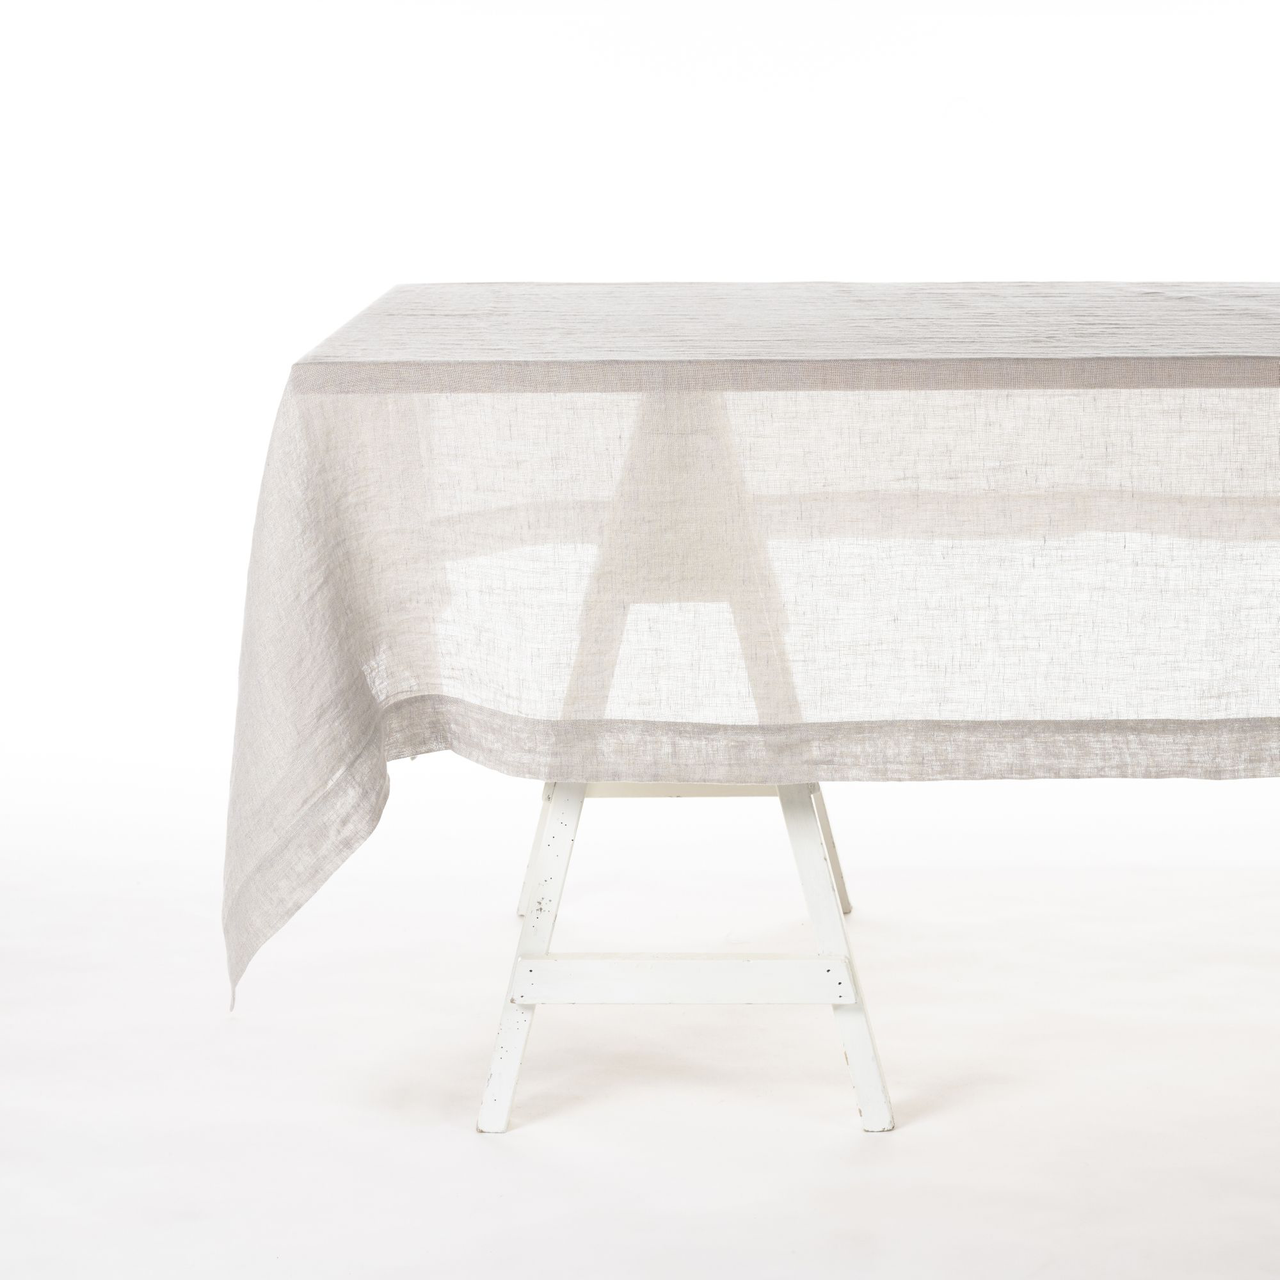 fjord washed tablecloth, libeco, table linen, - adorn.house